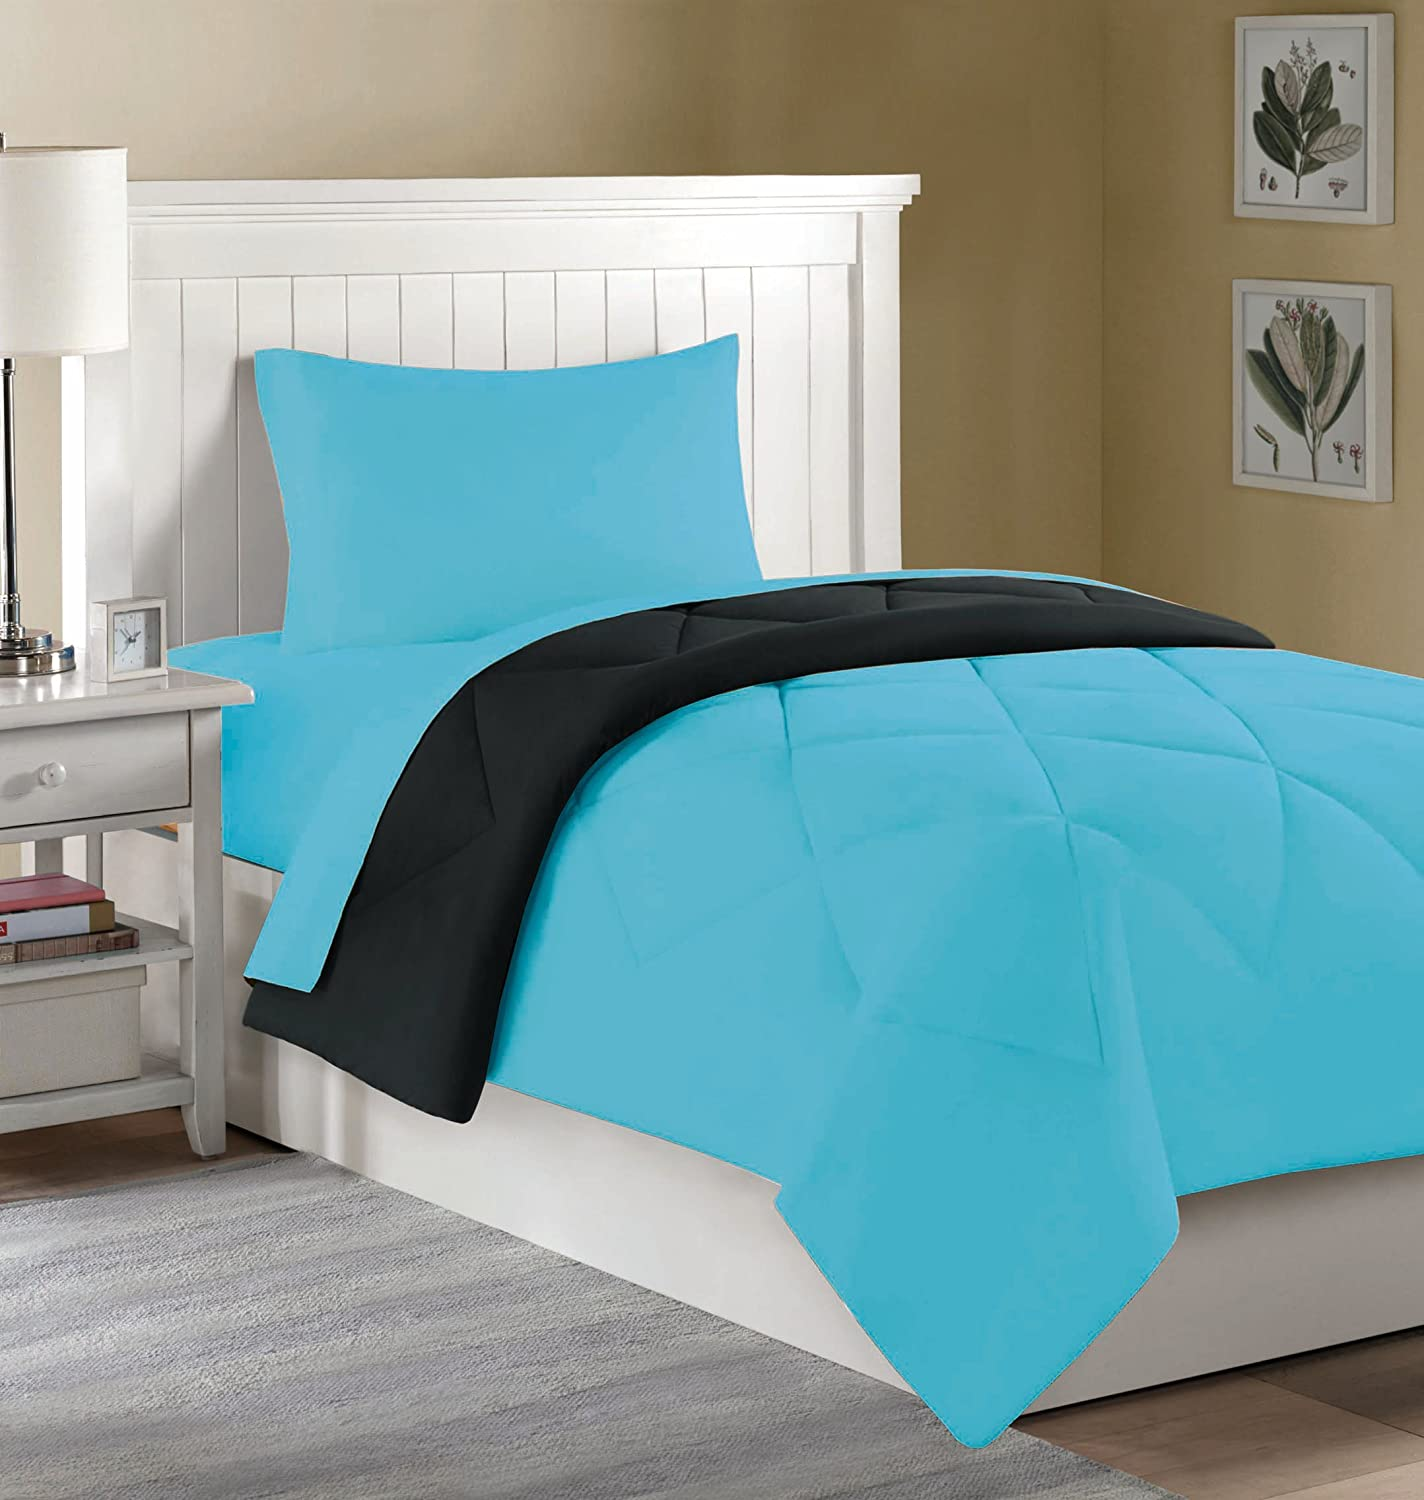 College Dorm Mini Bedding Set: Comforter, Sheets, Pillowcase - 4 PC